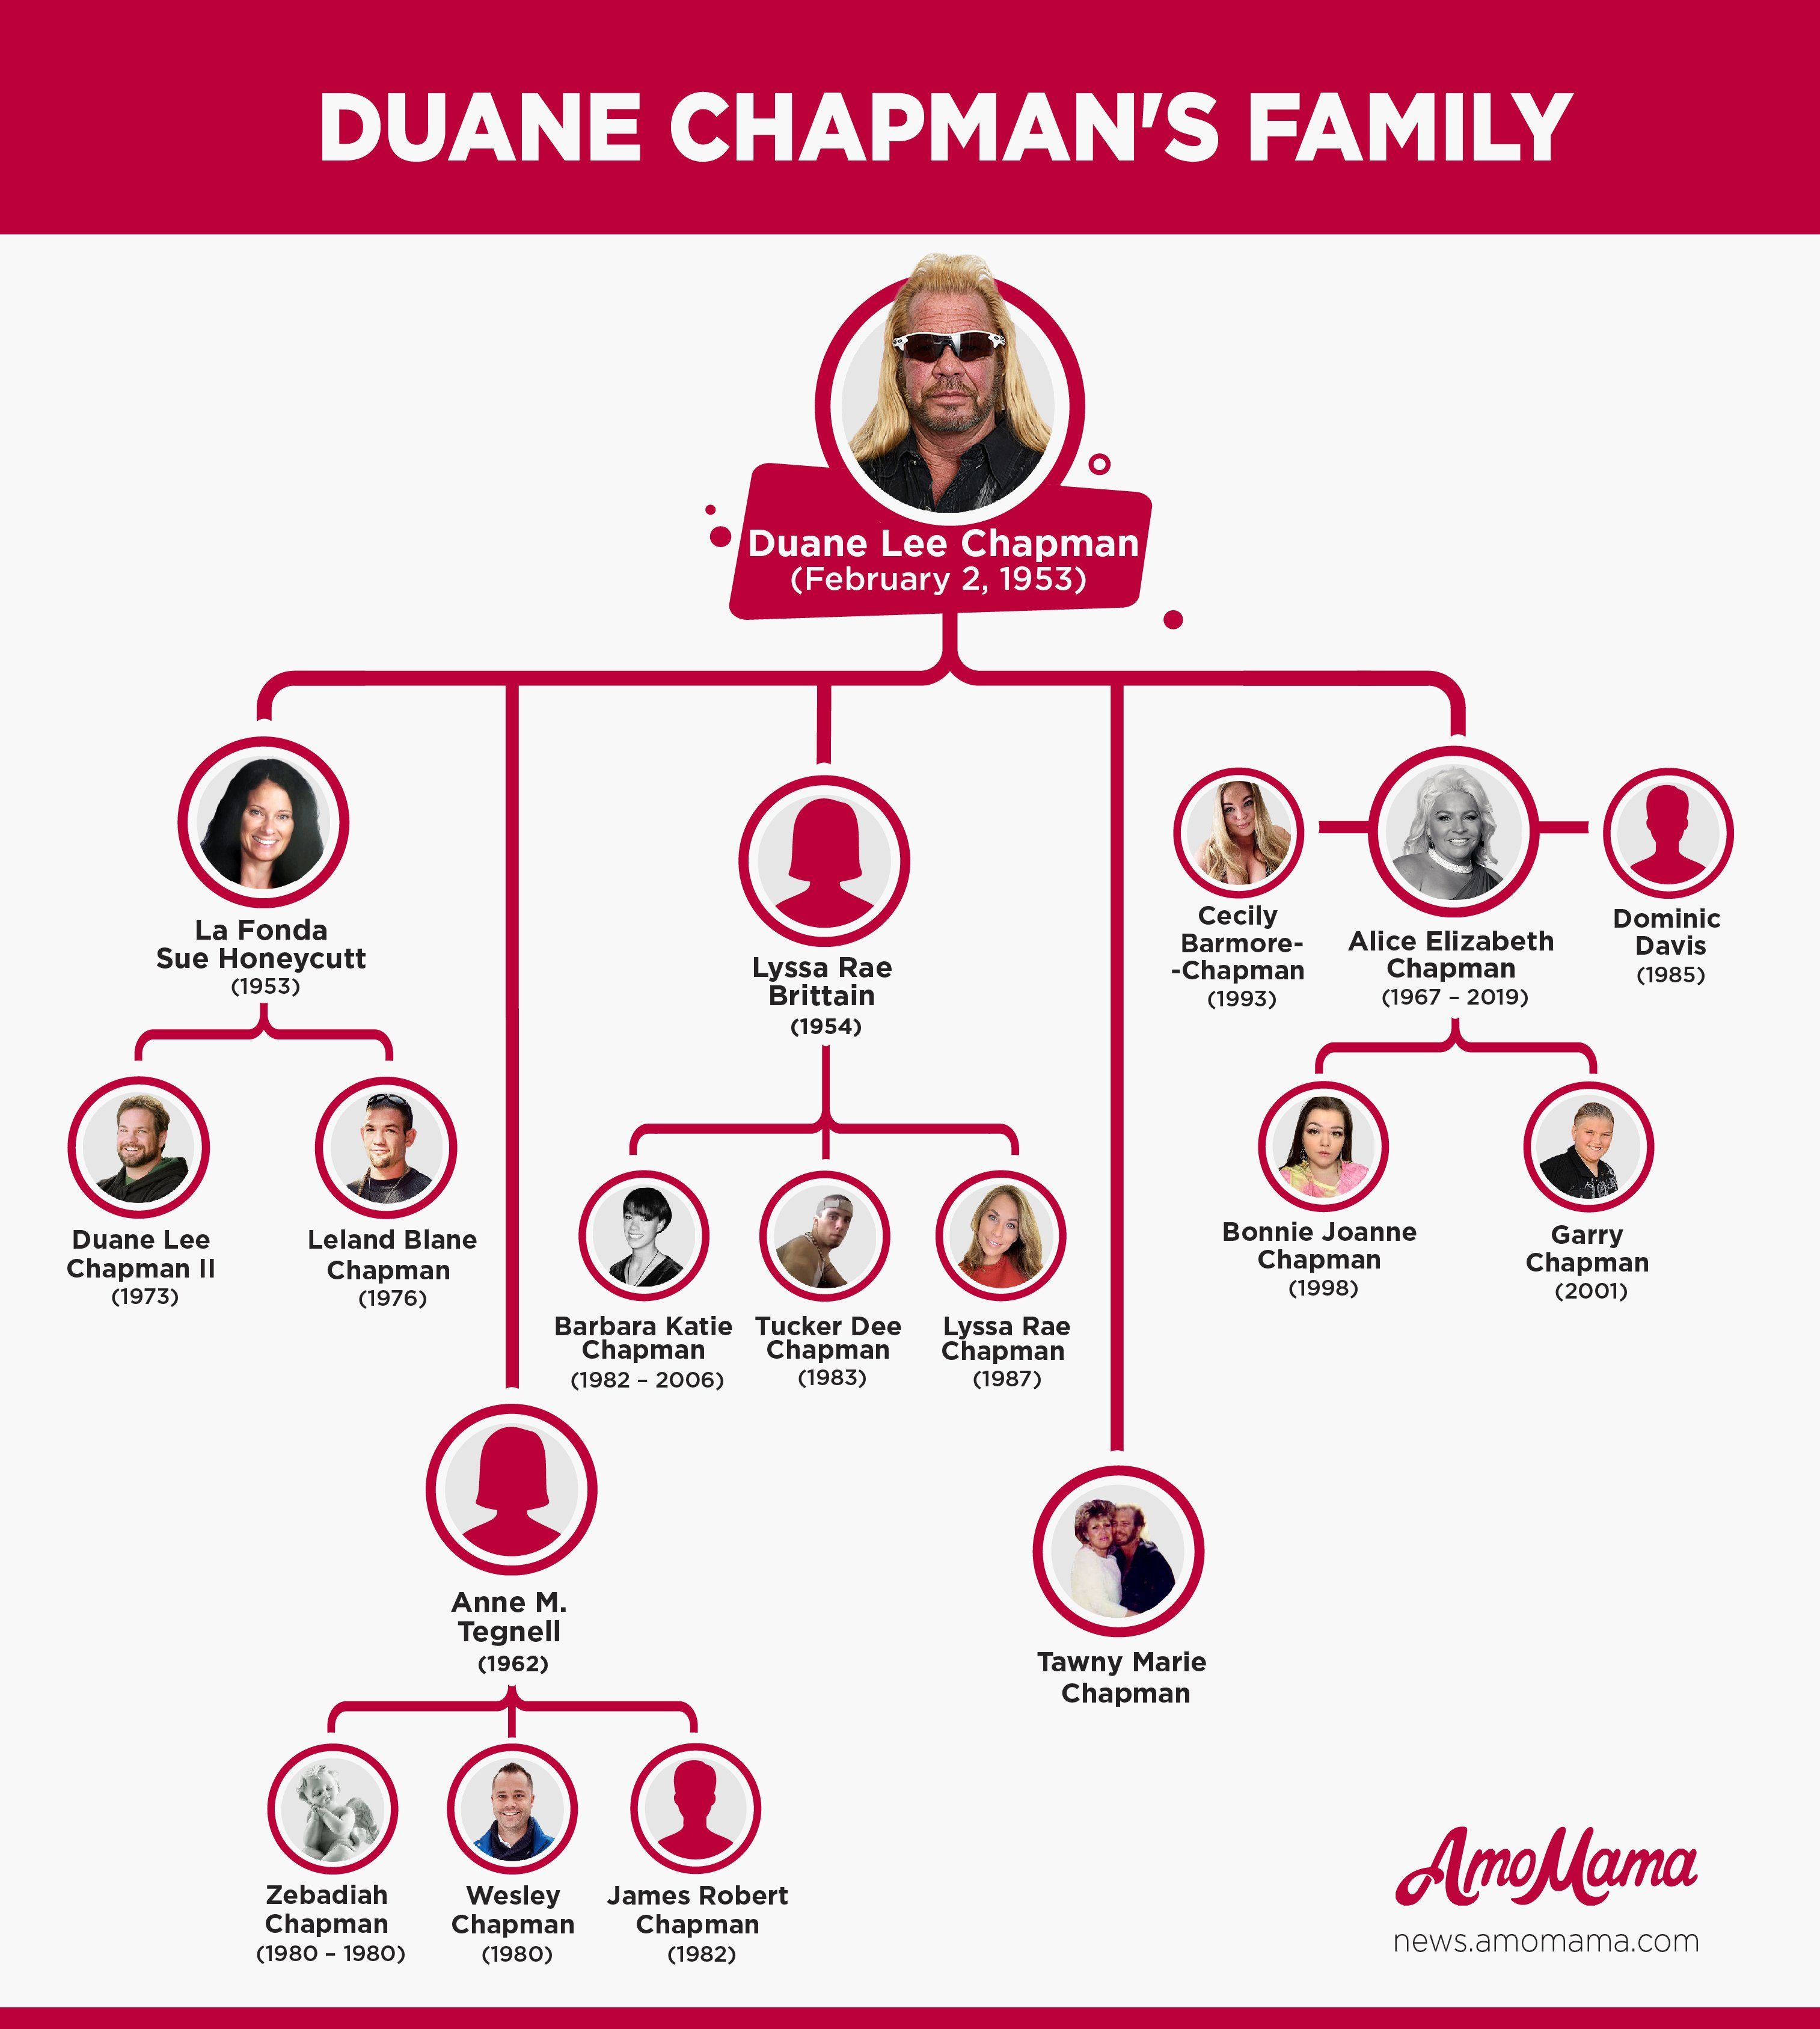 Duane 'Dog' Chapman's Five Wives and Twelve Children / amomama.com